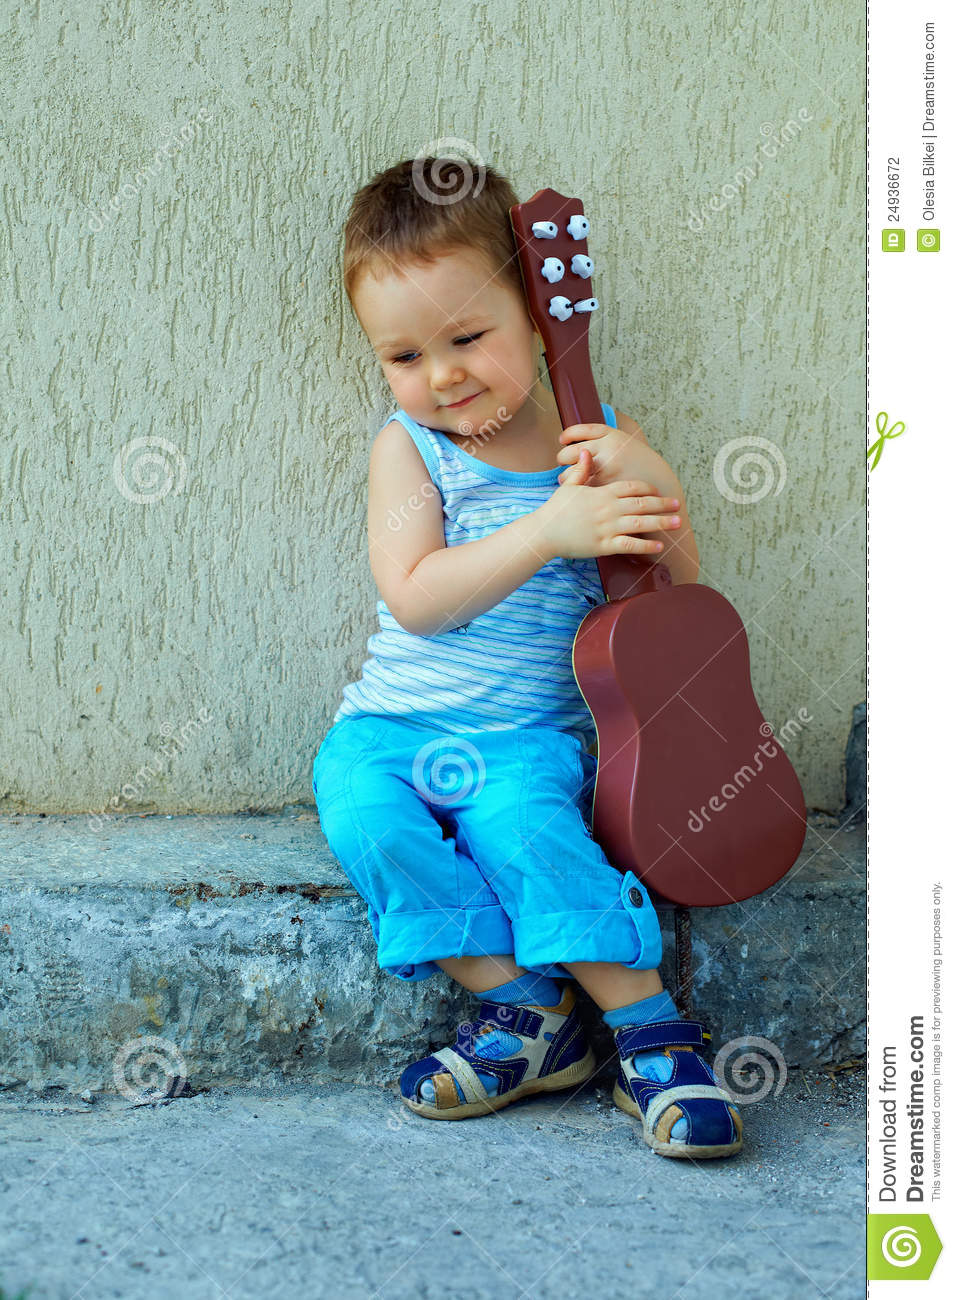 Cute Baby Attitude Wallpaper Cute Baby Boy With Guitar Sitting Against Wall Stock Photo